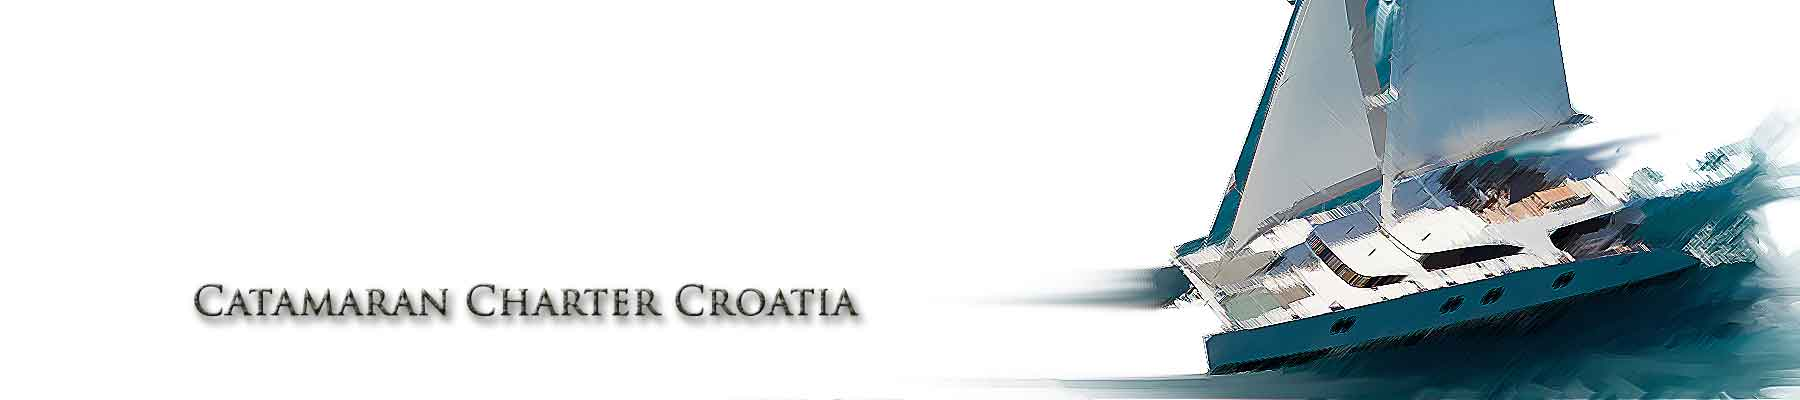 Catamaran Charter Croatia selection